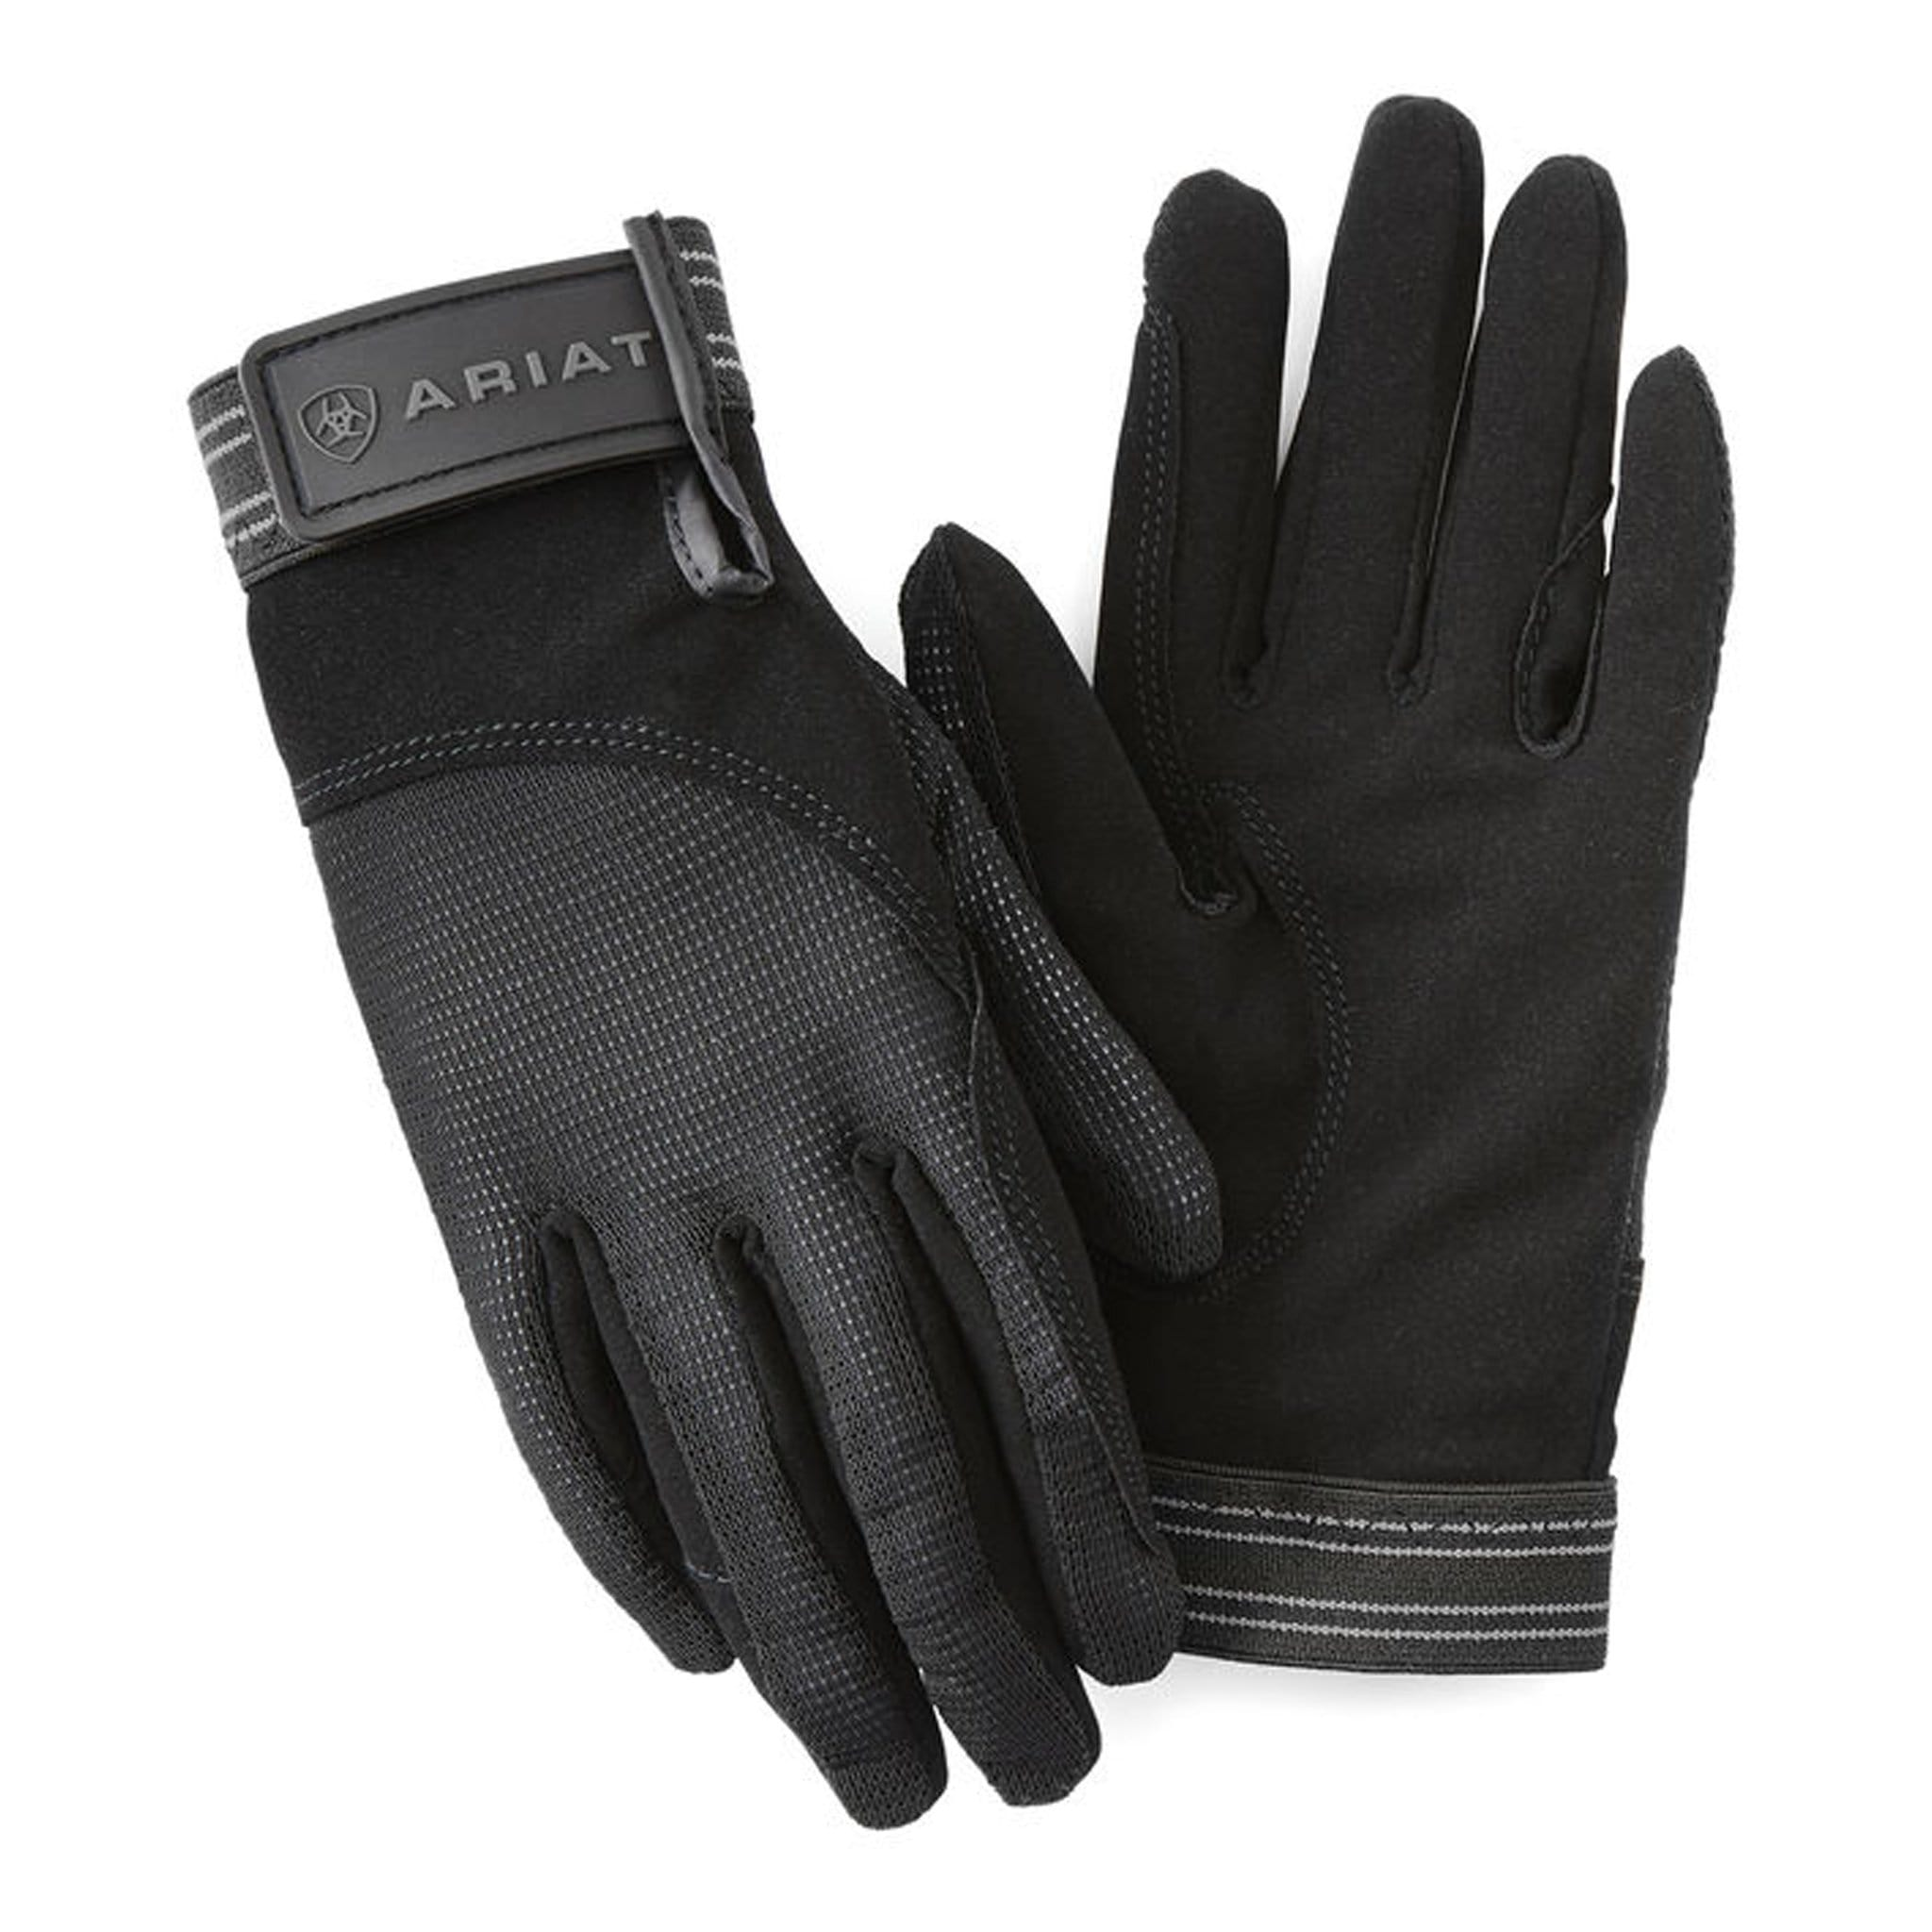 Ariat Air Grip Gloves 10004372 Black